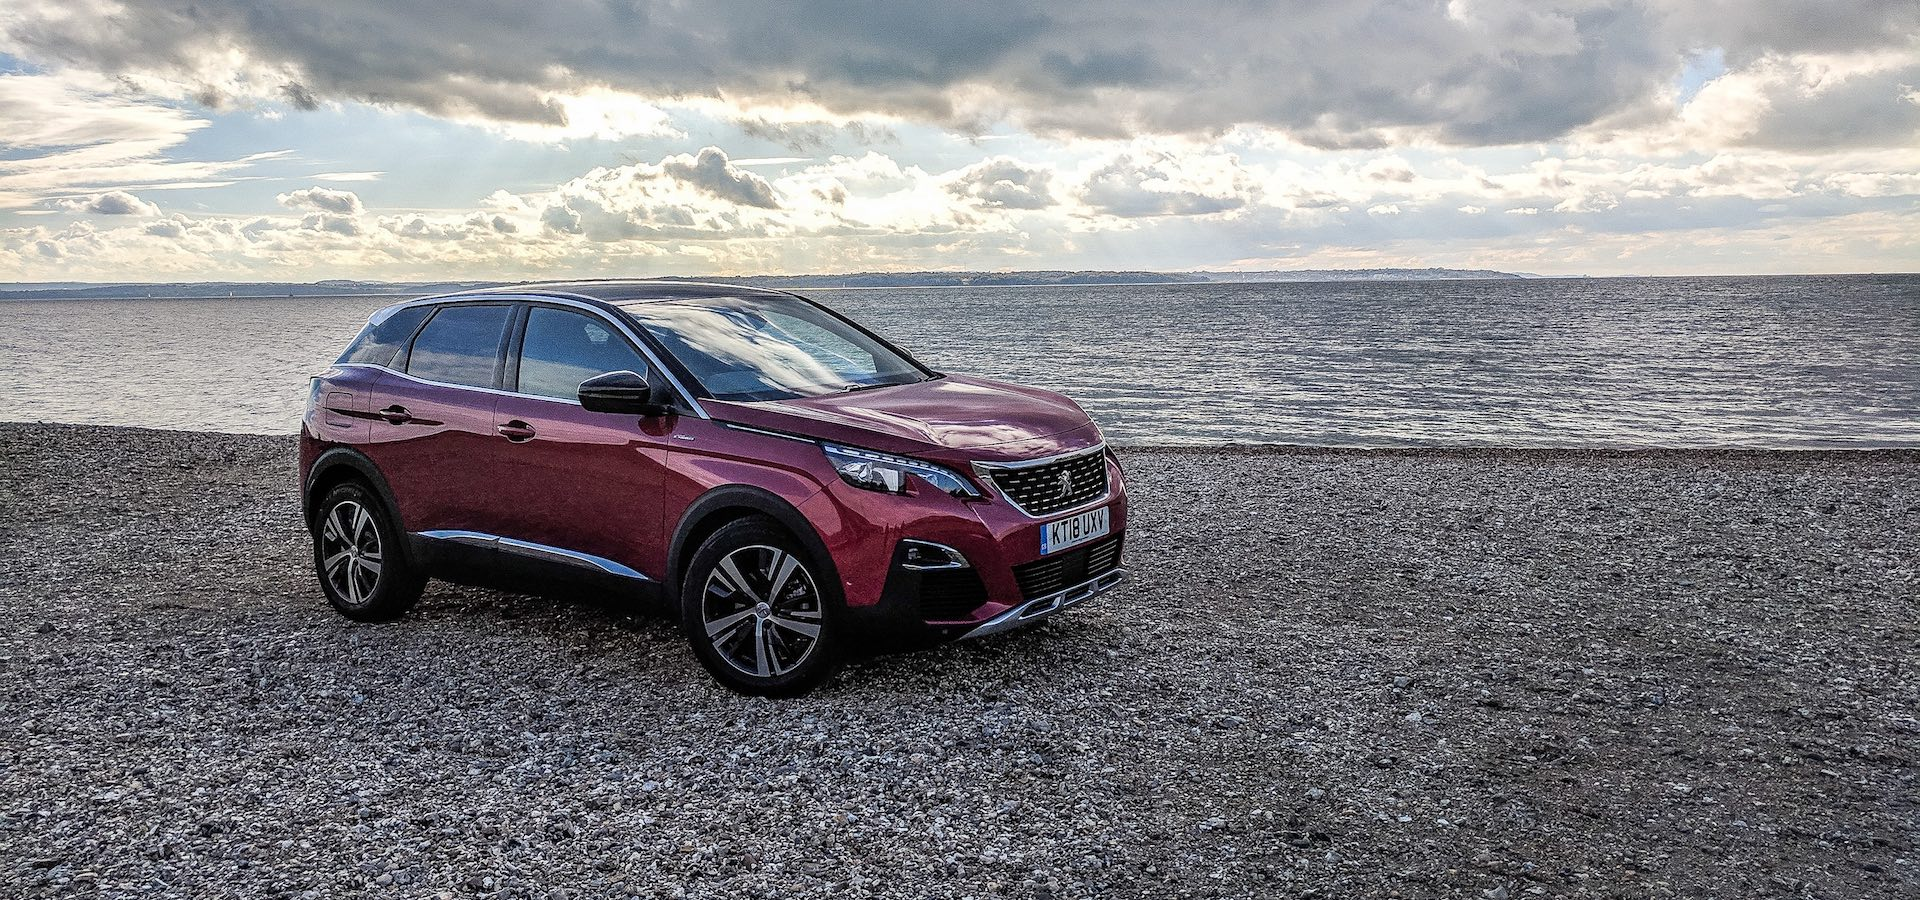 Peugeot 3008 SUV long-term review wallpaper | The Car Expert